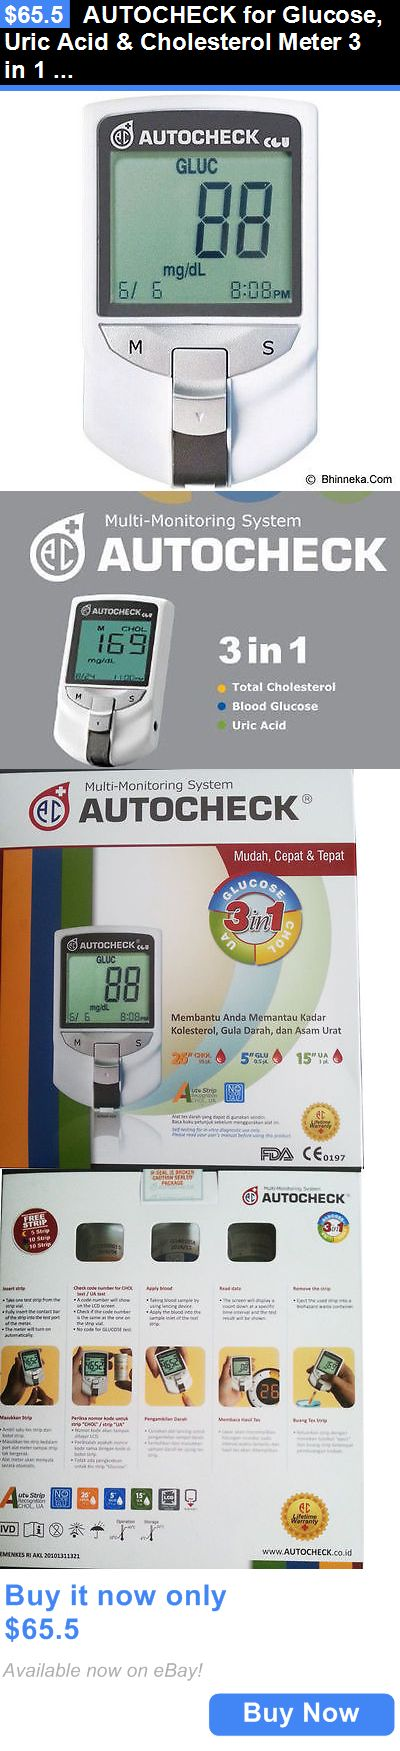 Cholesterol Testing: Autocheck For Glucose, Uric Acid And Cholesterol Meter 3 In 1 Monitoring System BUY IT NOW ONLY: $65.5